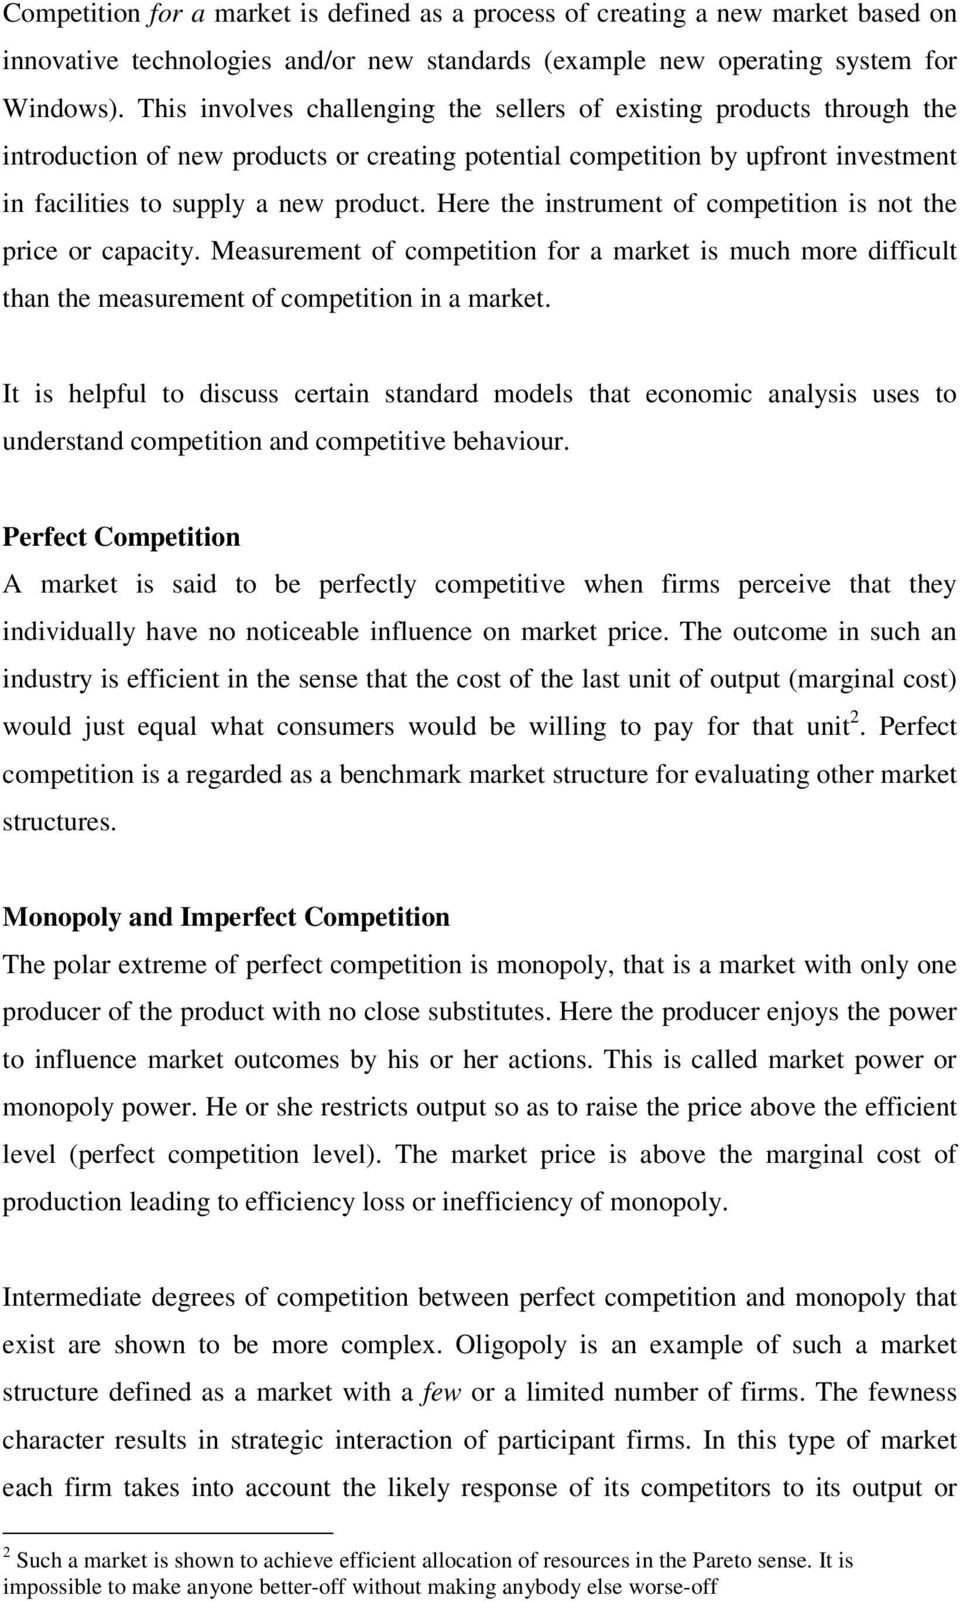 Here the instrument of competition is not the price or capacity. Measurement of competition for a market is much more difficult than the measurement of competition in a market.